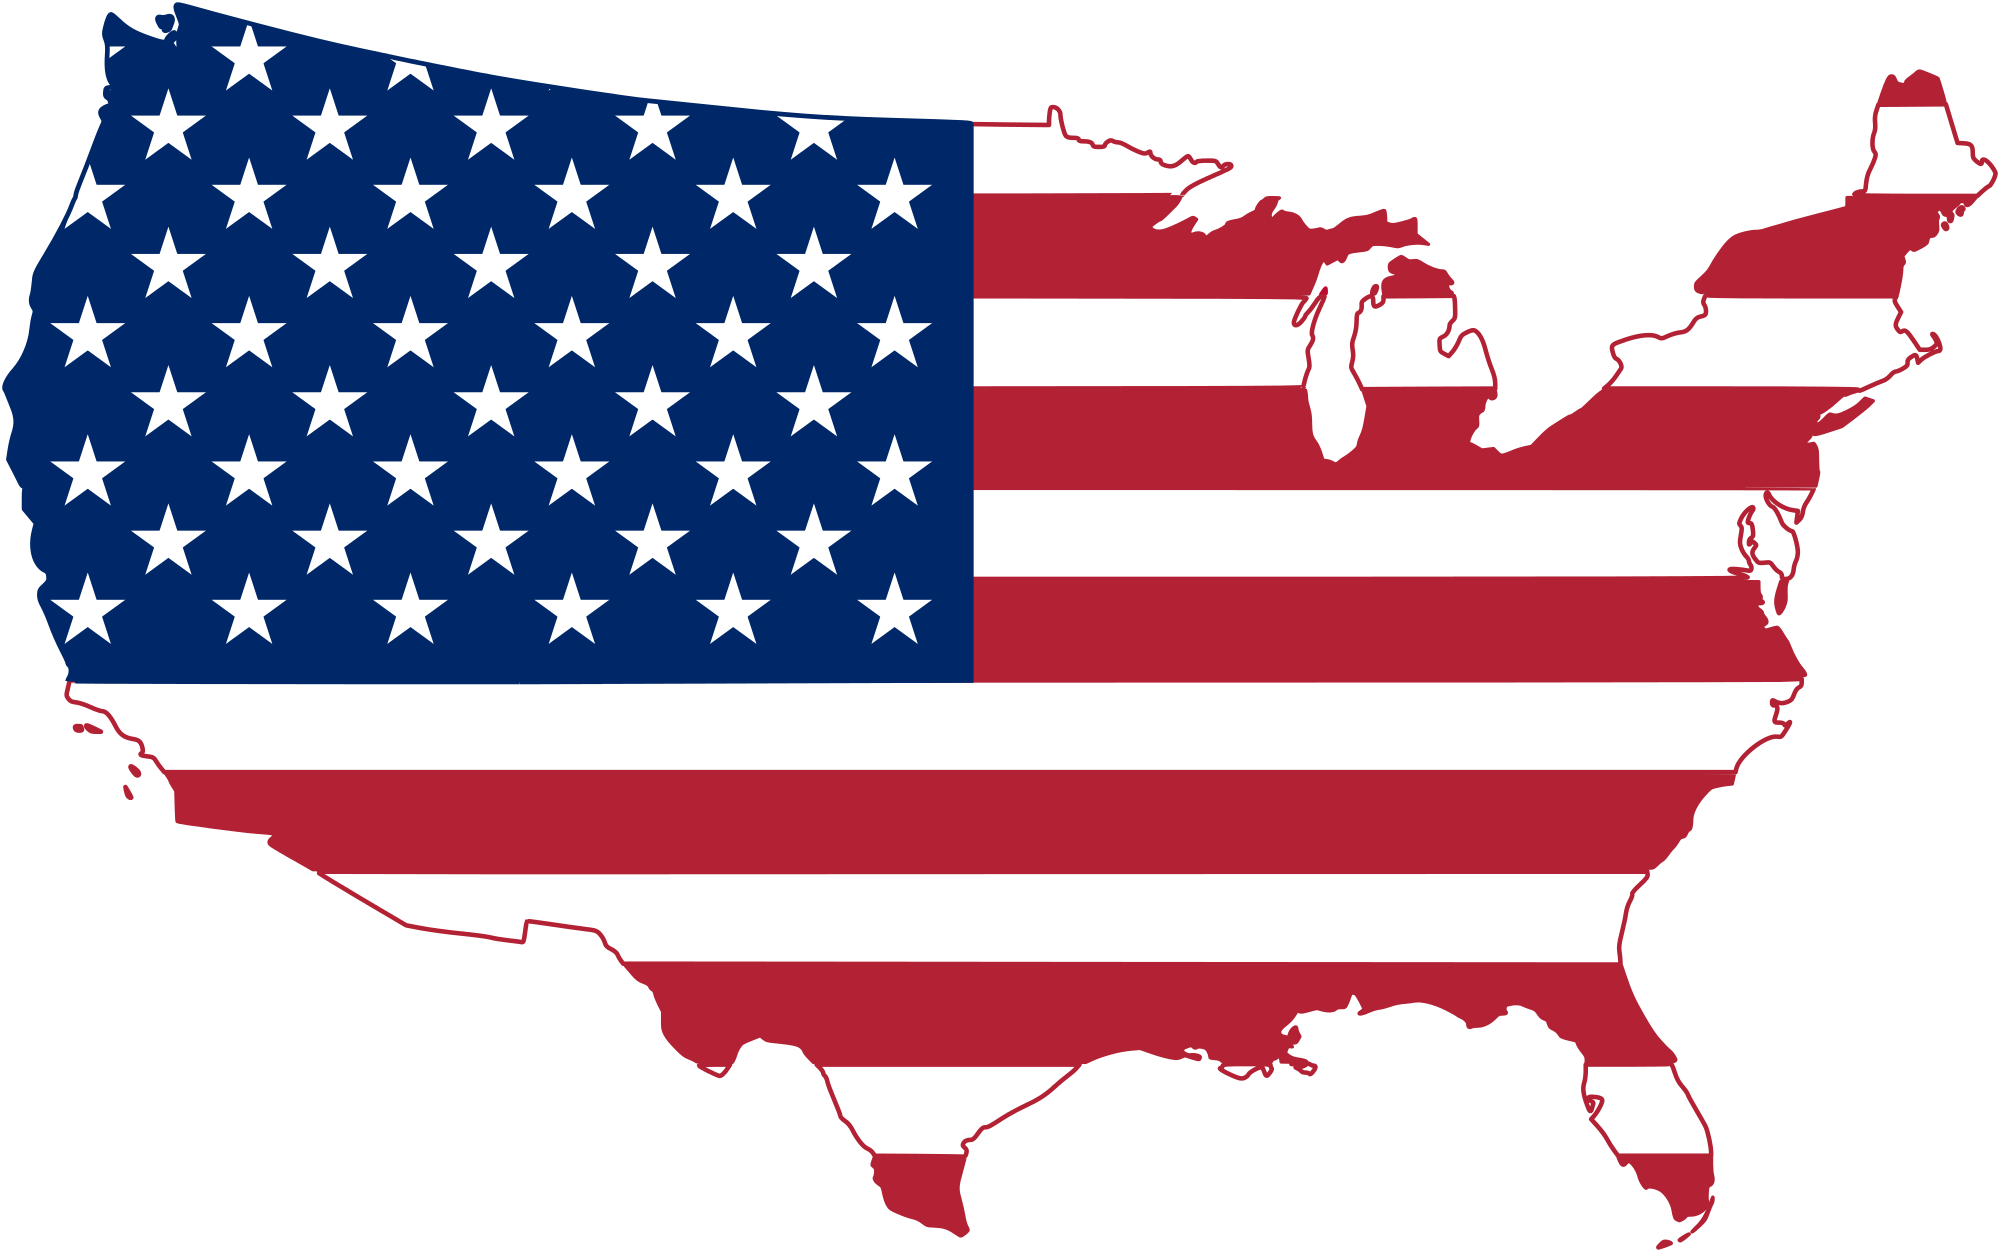 Usa flag map png. File of the united